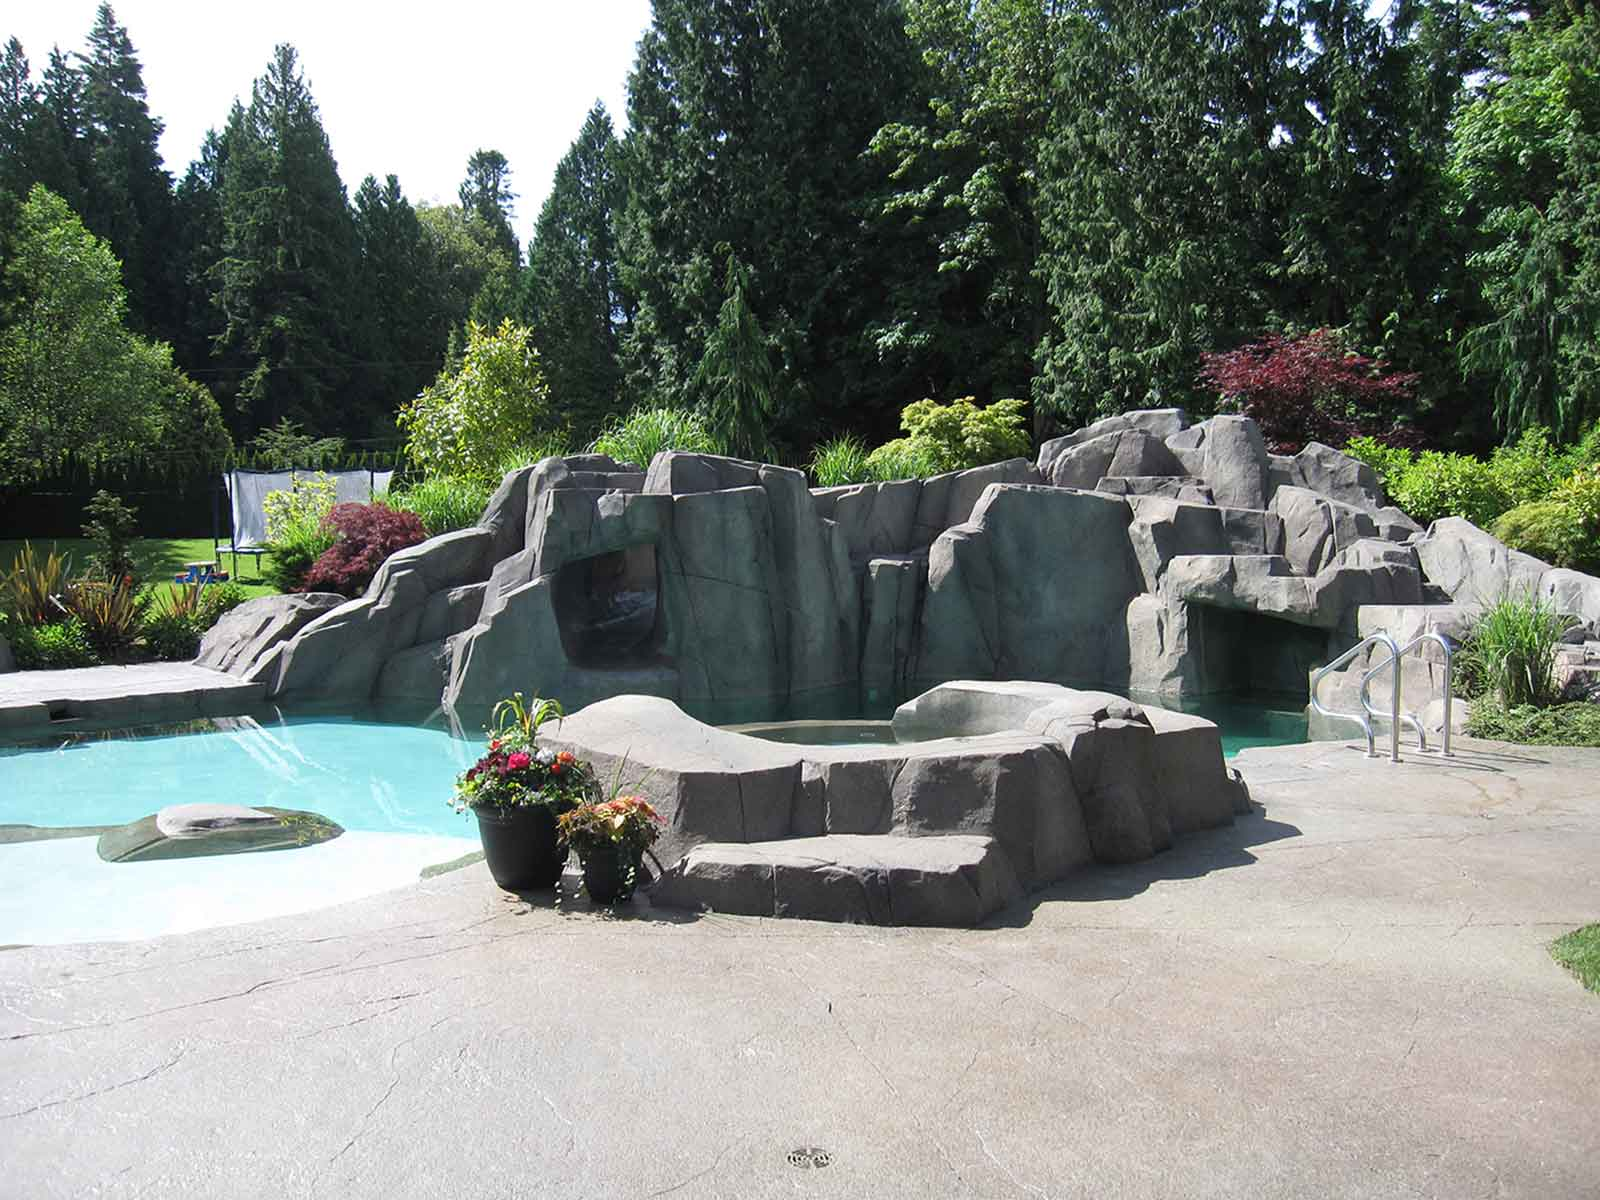 Custom artificial rock work and in-ground swimming pool